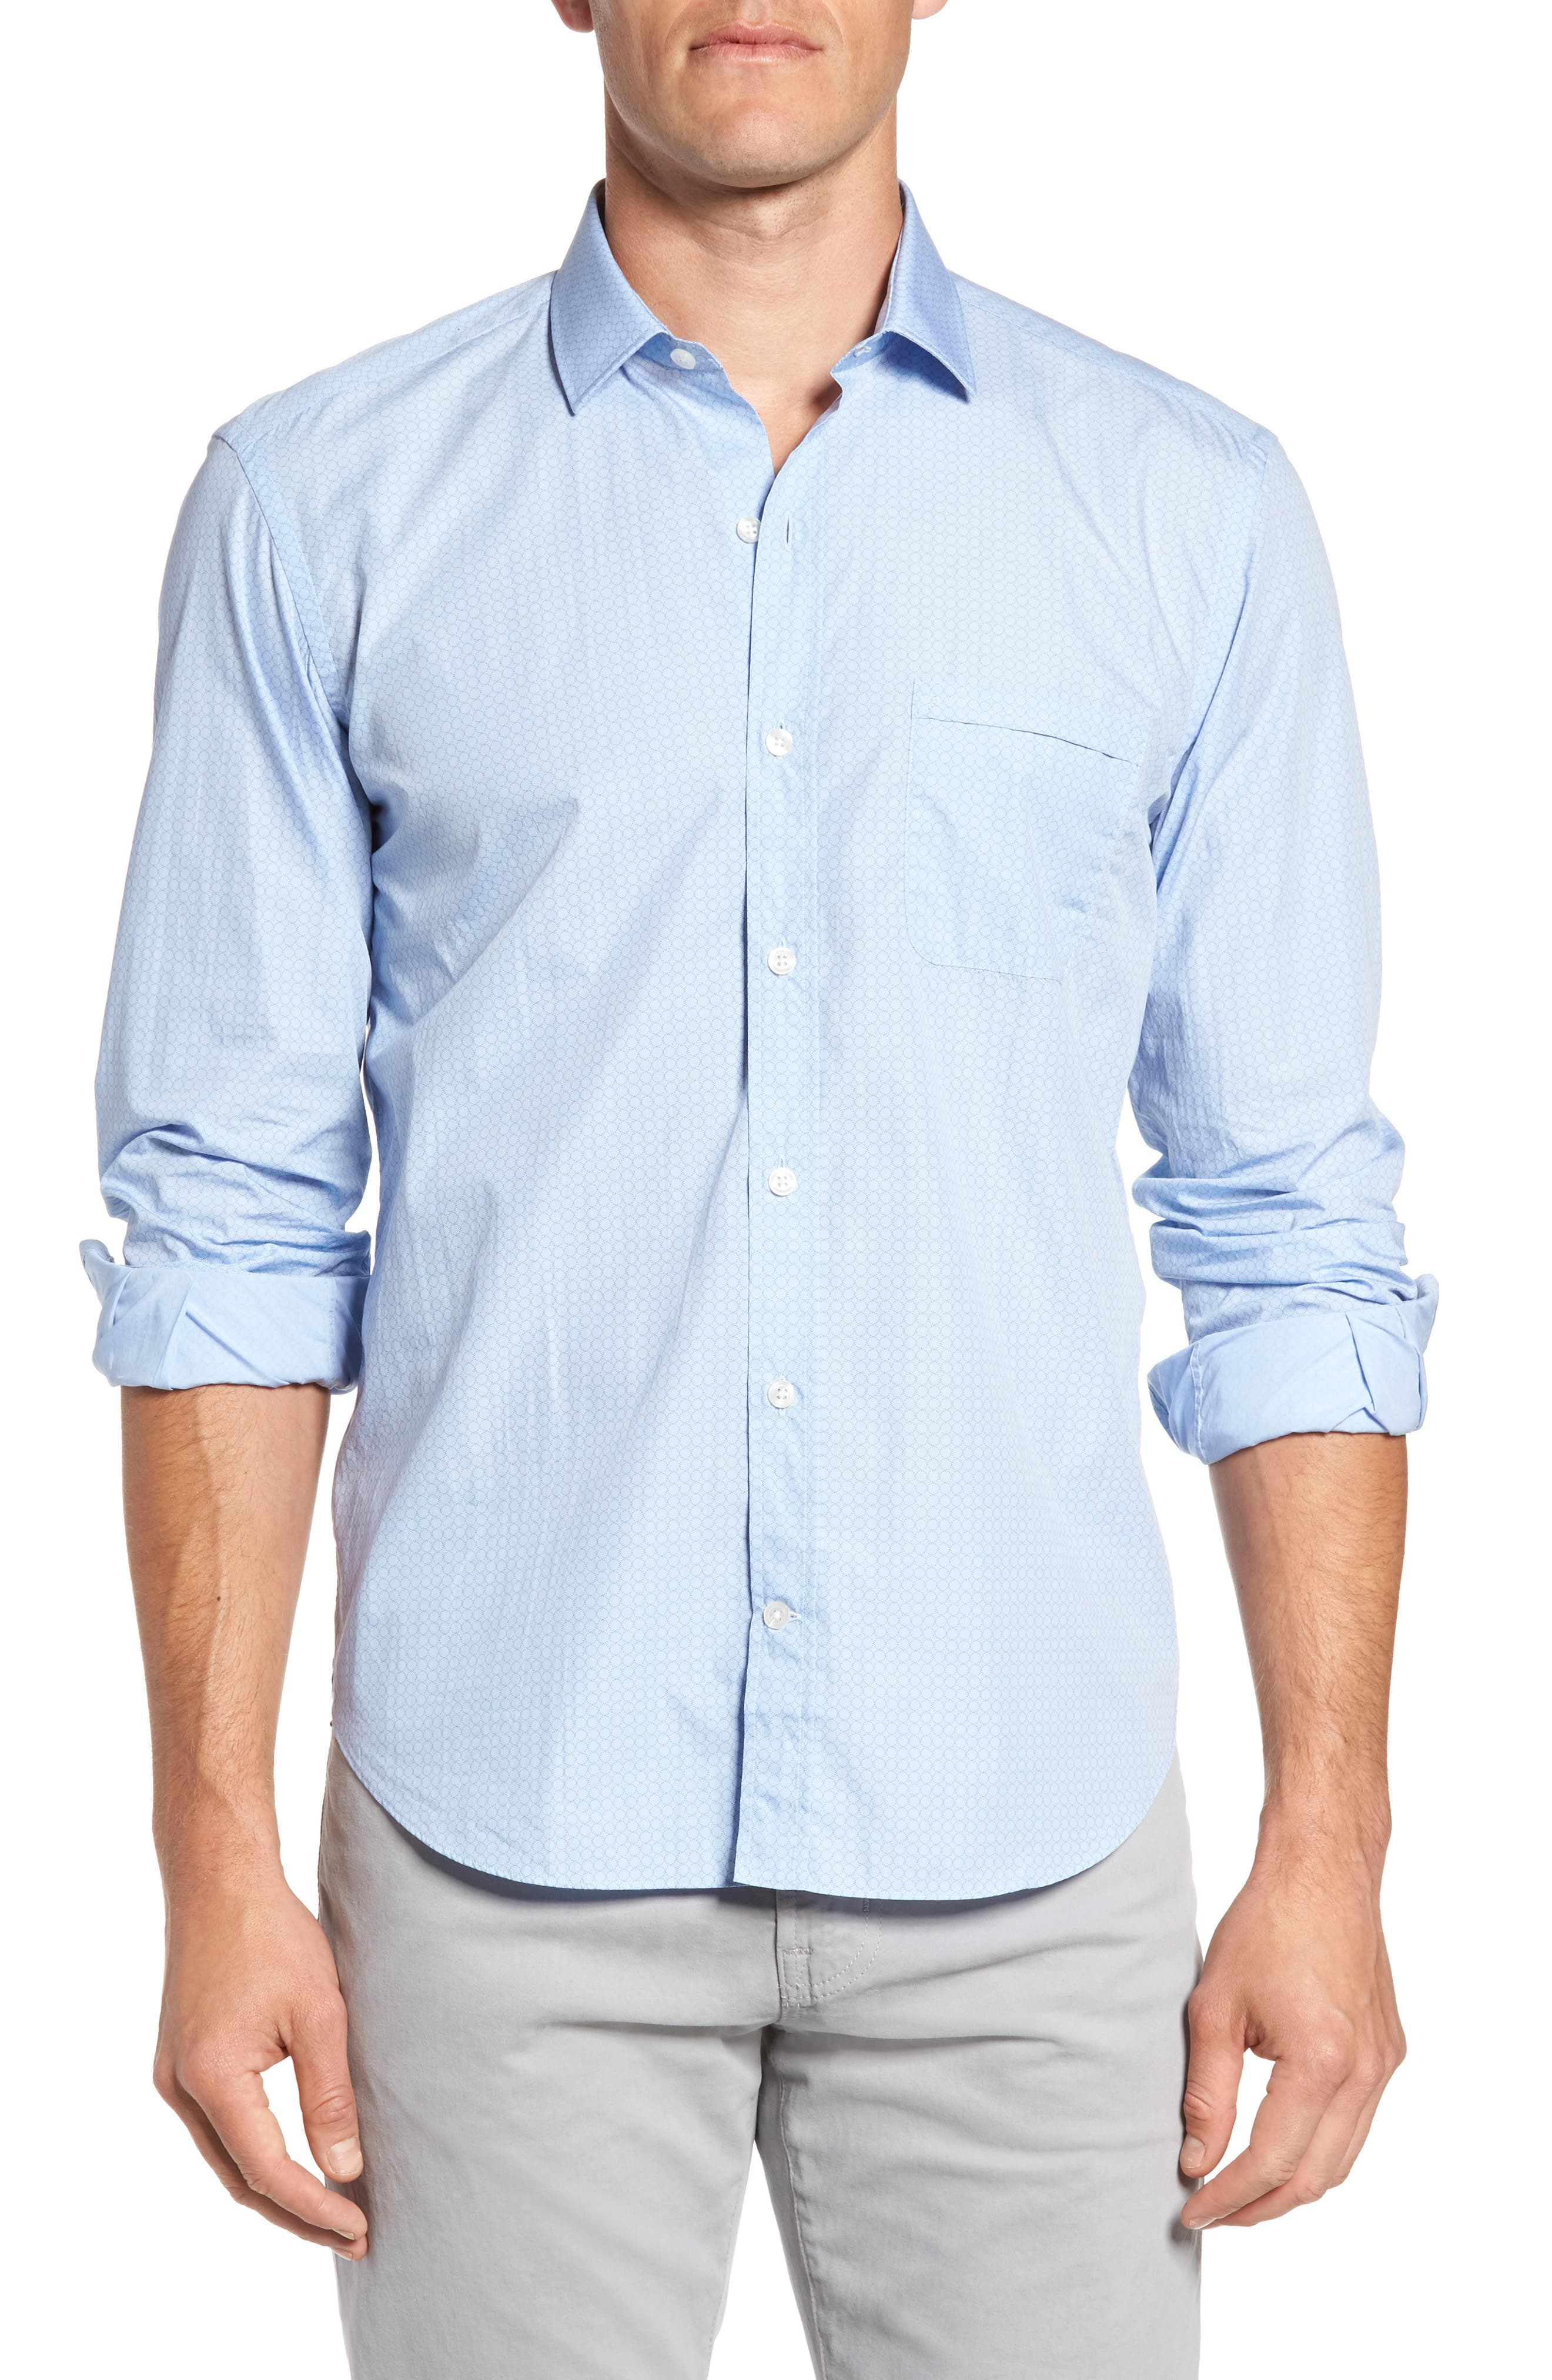 Alternate Image 1 Selected - Culturata Trim Fit Heritage Print Sport Shirt